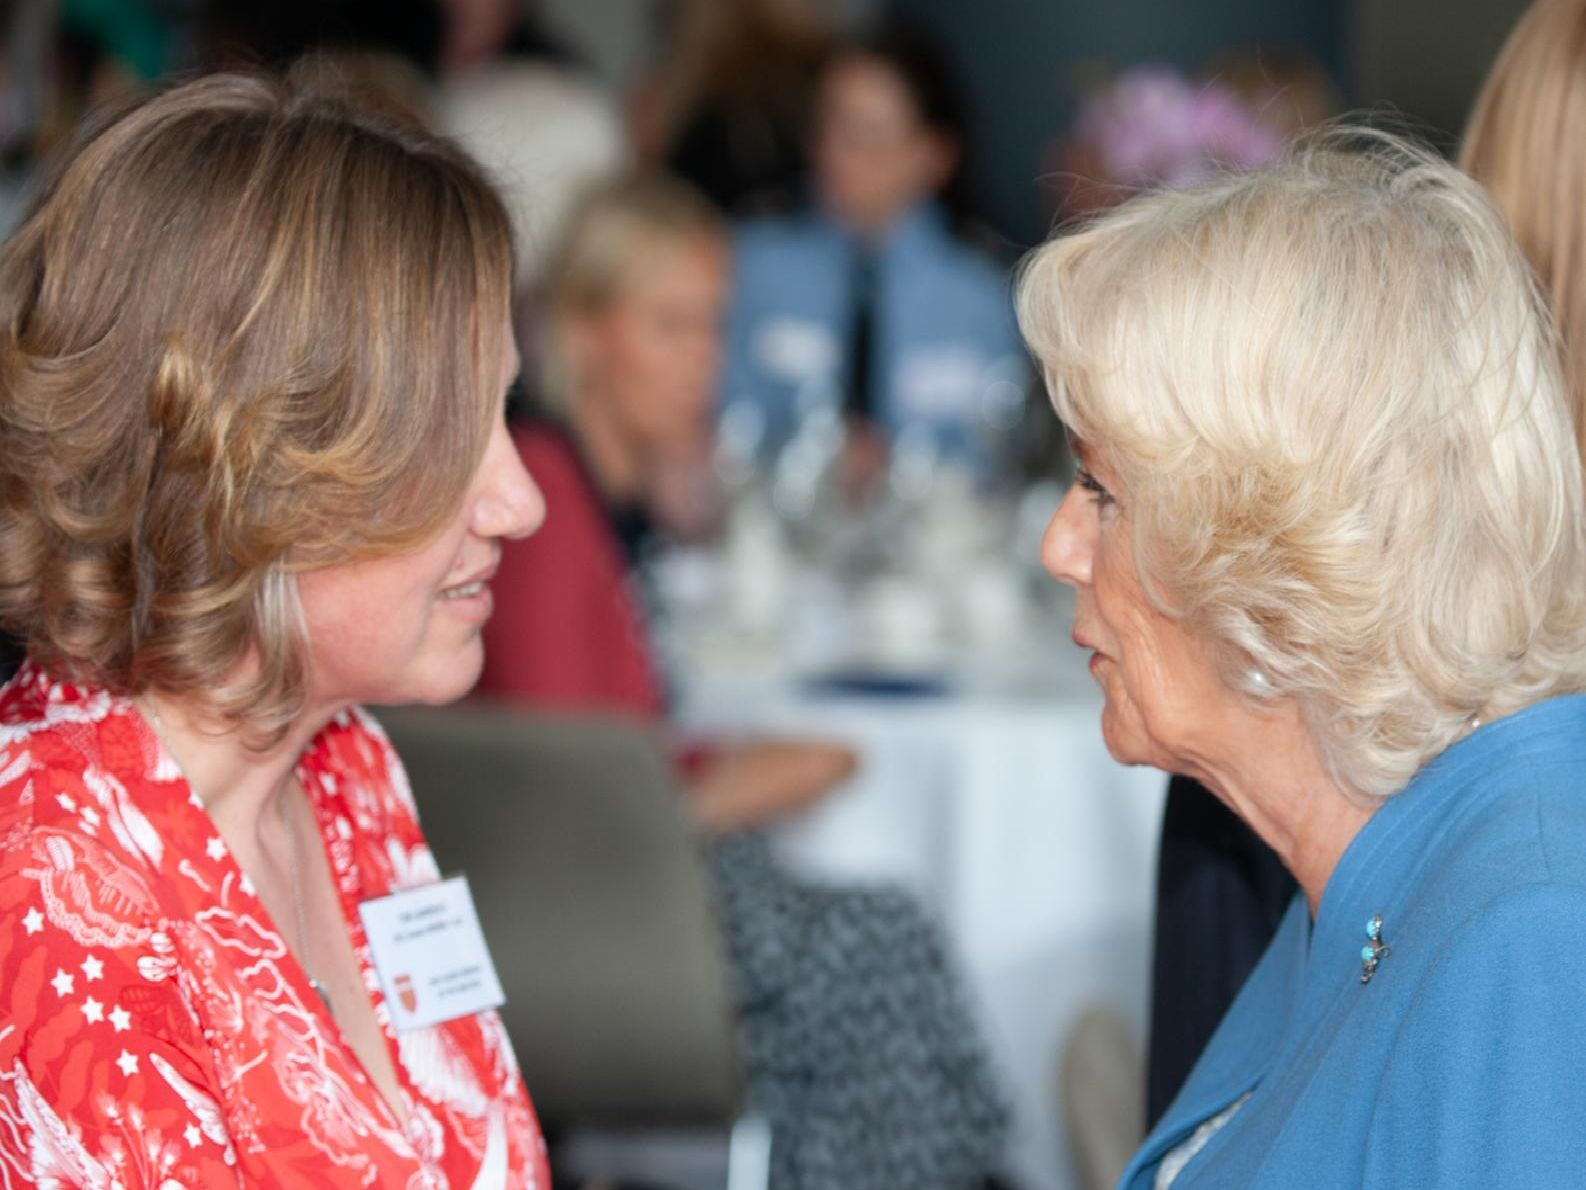 HRH The Duchess of Cornwall meeting women at the lunch event